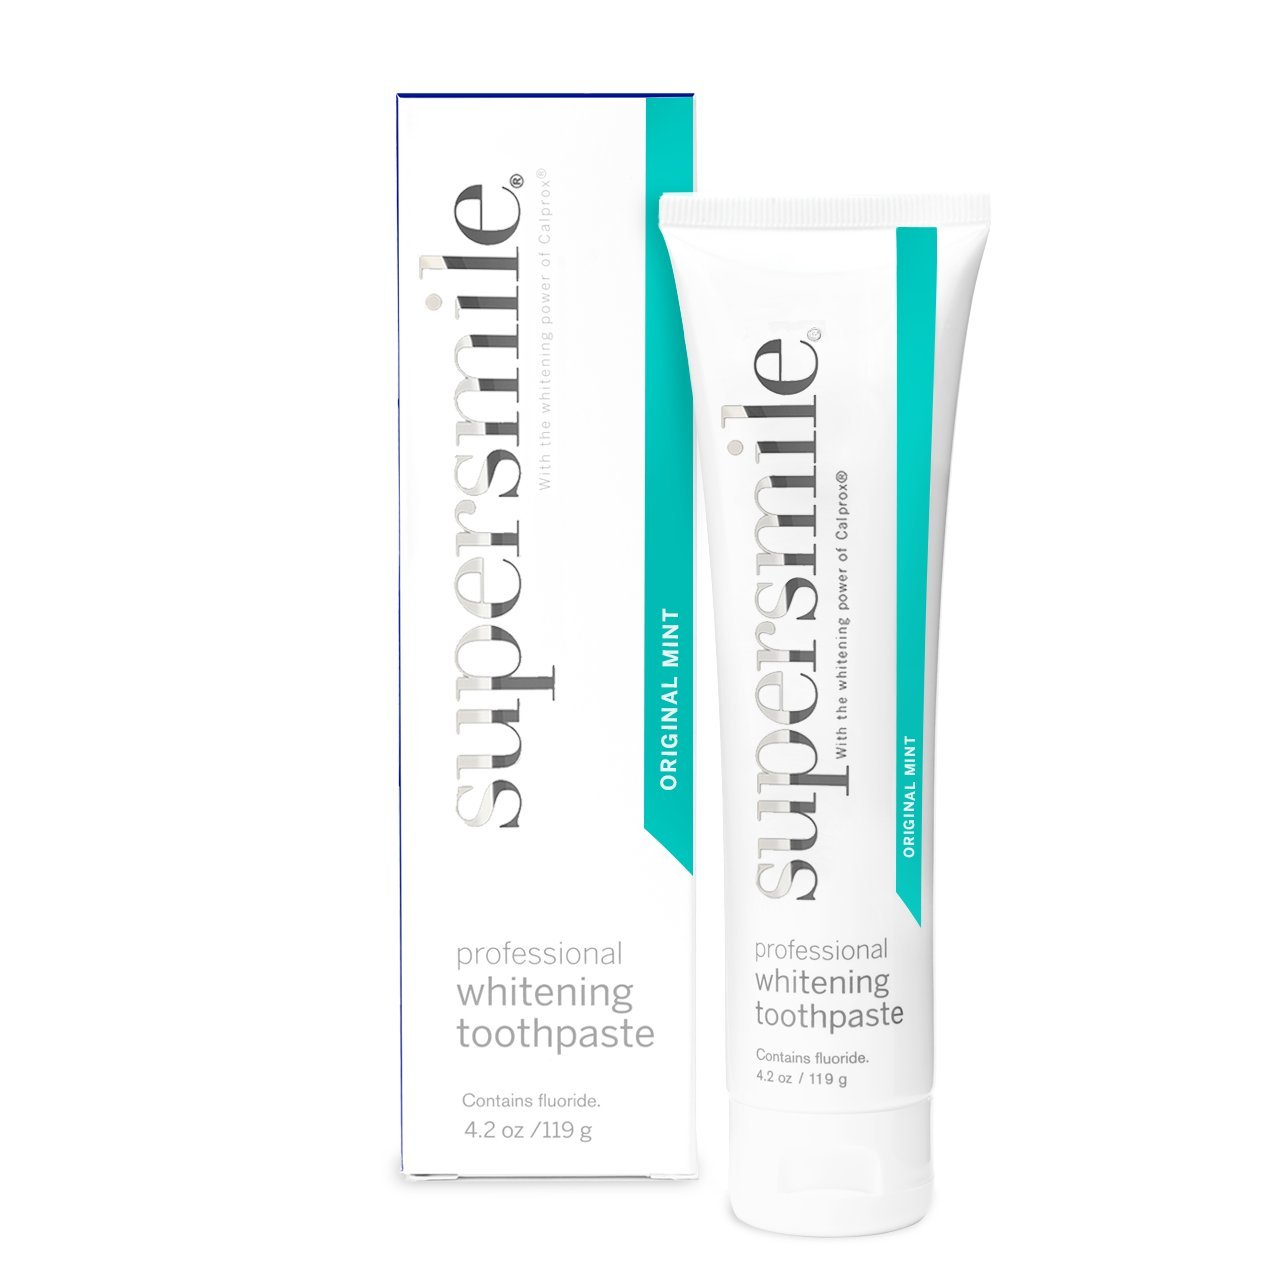 Supersmile Professional Teeth Whitening Toothpaste - Clinically Proven to Remove Coffee Tea Wine Tobacco and Food Stains to Whiten Teeth Up to 6 Shades - SLS and Silica Free - Original Mint 4.2 Oz